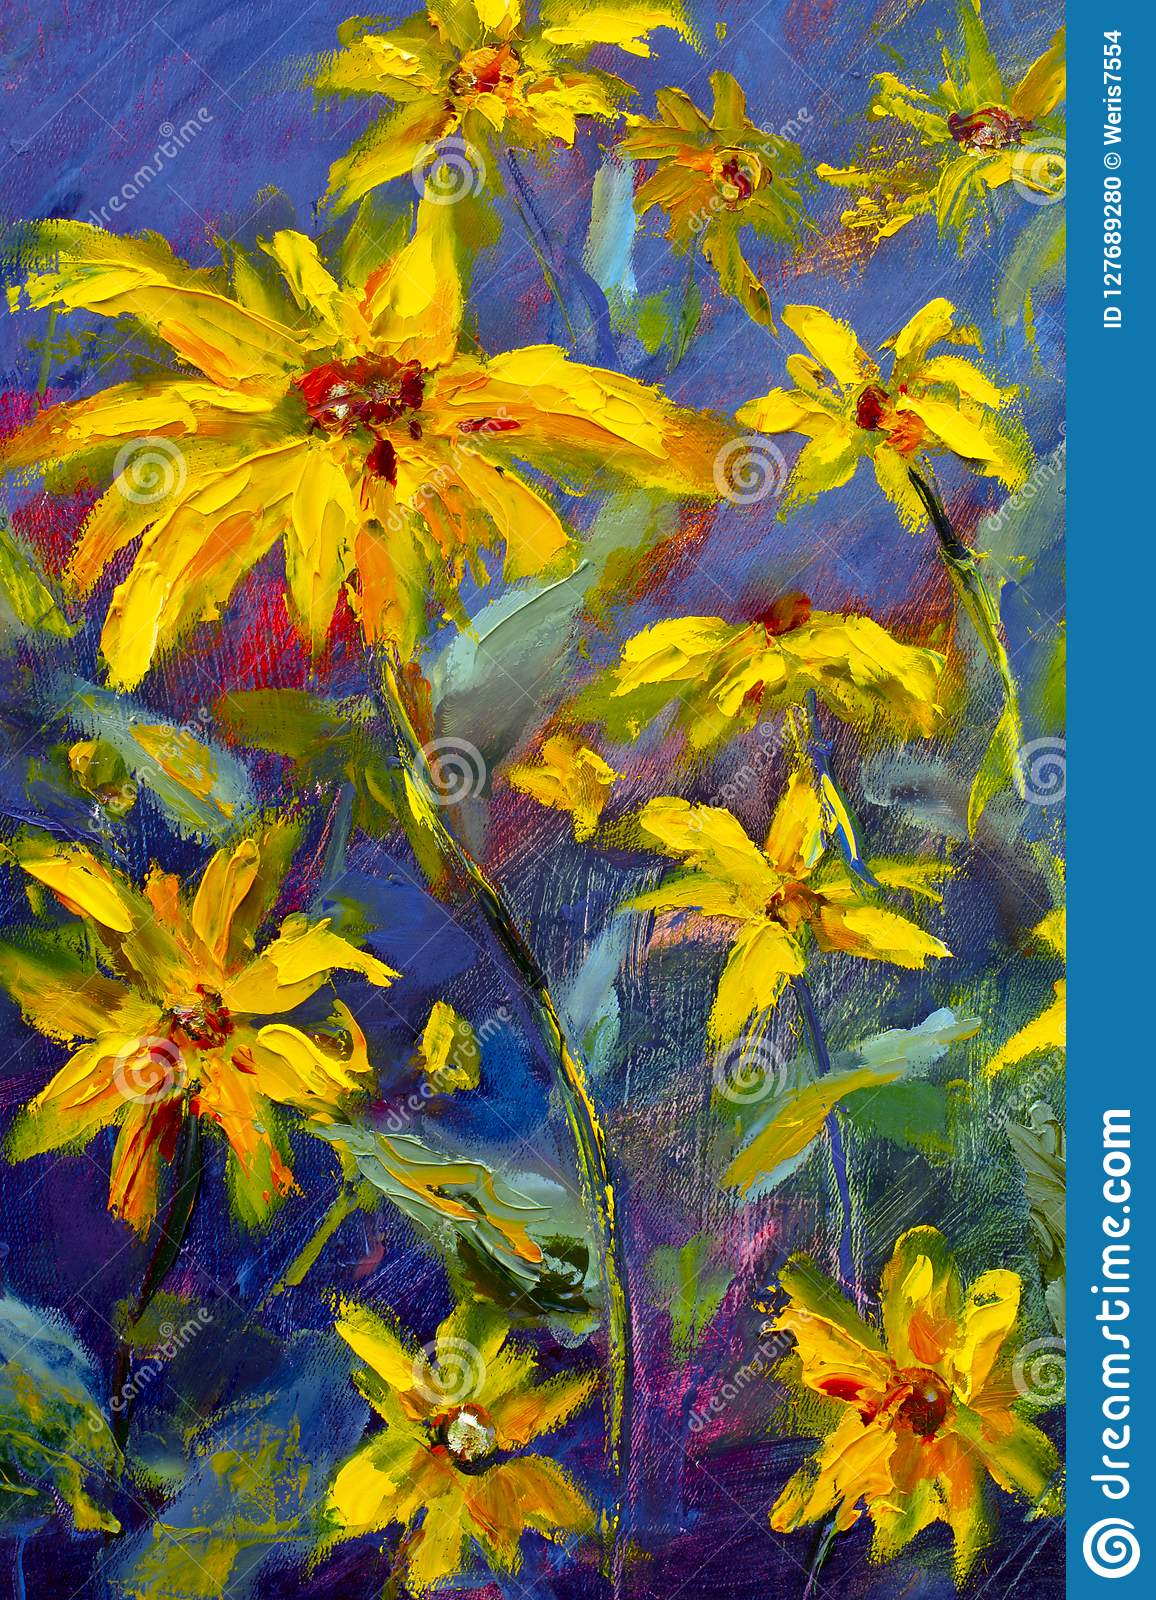 Flowers Painting Yellow Wild Flowers Daisies Orange Sunflowers On A Blue Background Oil Paintings Landscape Impressionism Artwo Stock Illustration Illustration Of Painting Blue 127689280